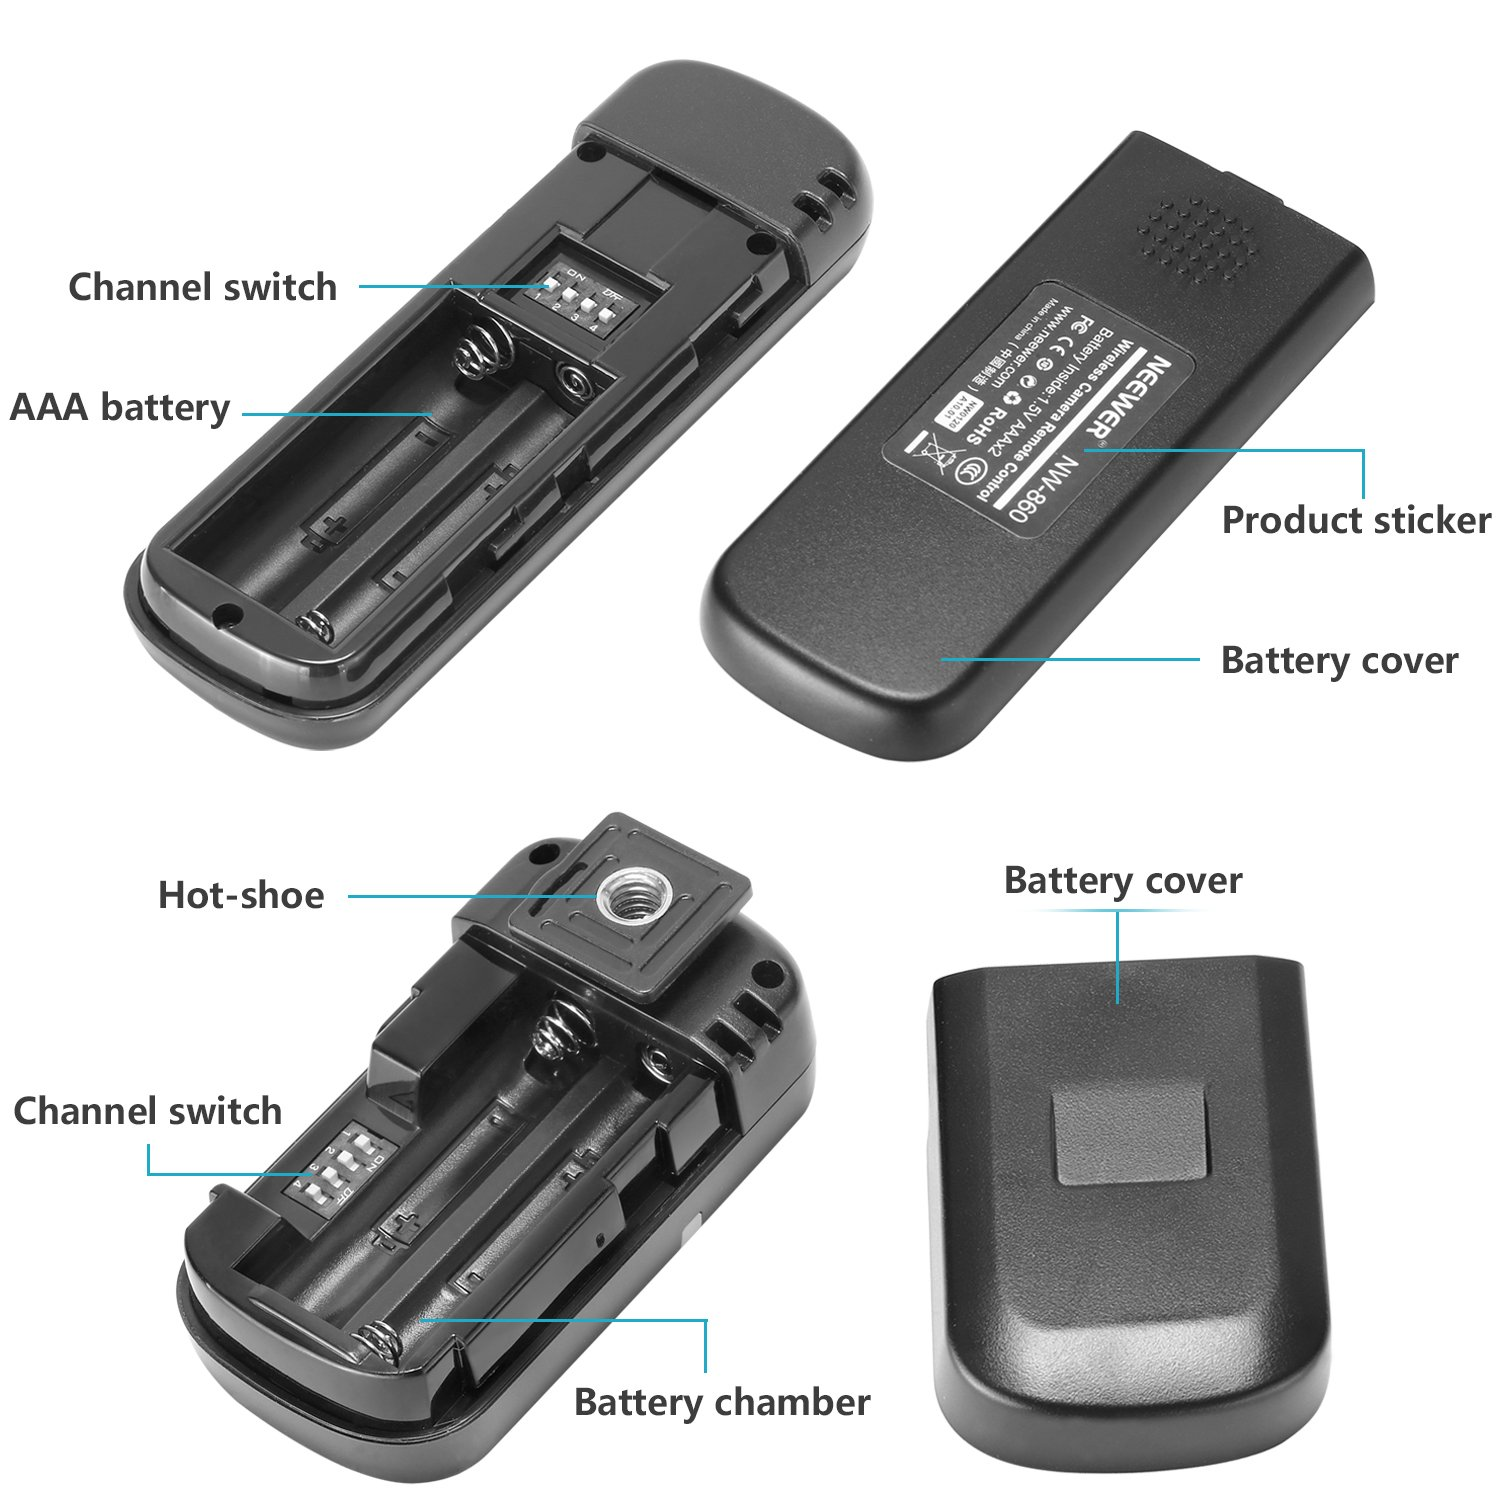 Neewer Dslr Camera Shutter Release 320ft Photo R C Switch For Radio Control Includes